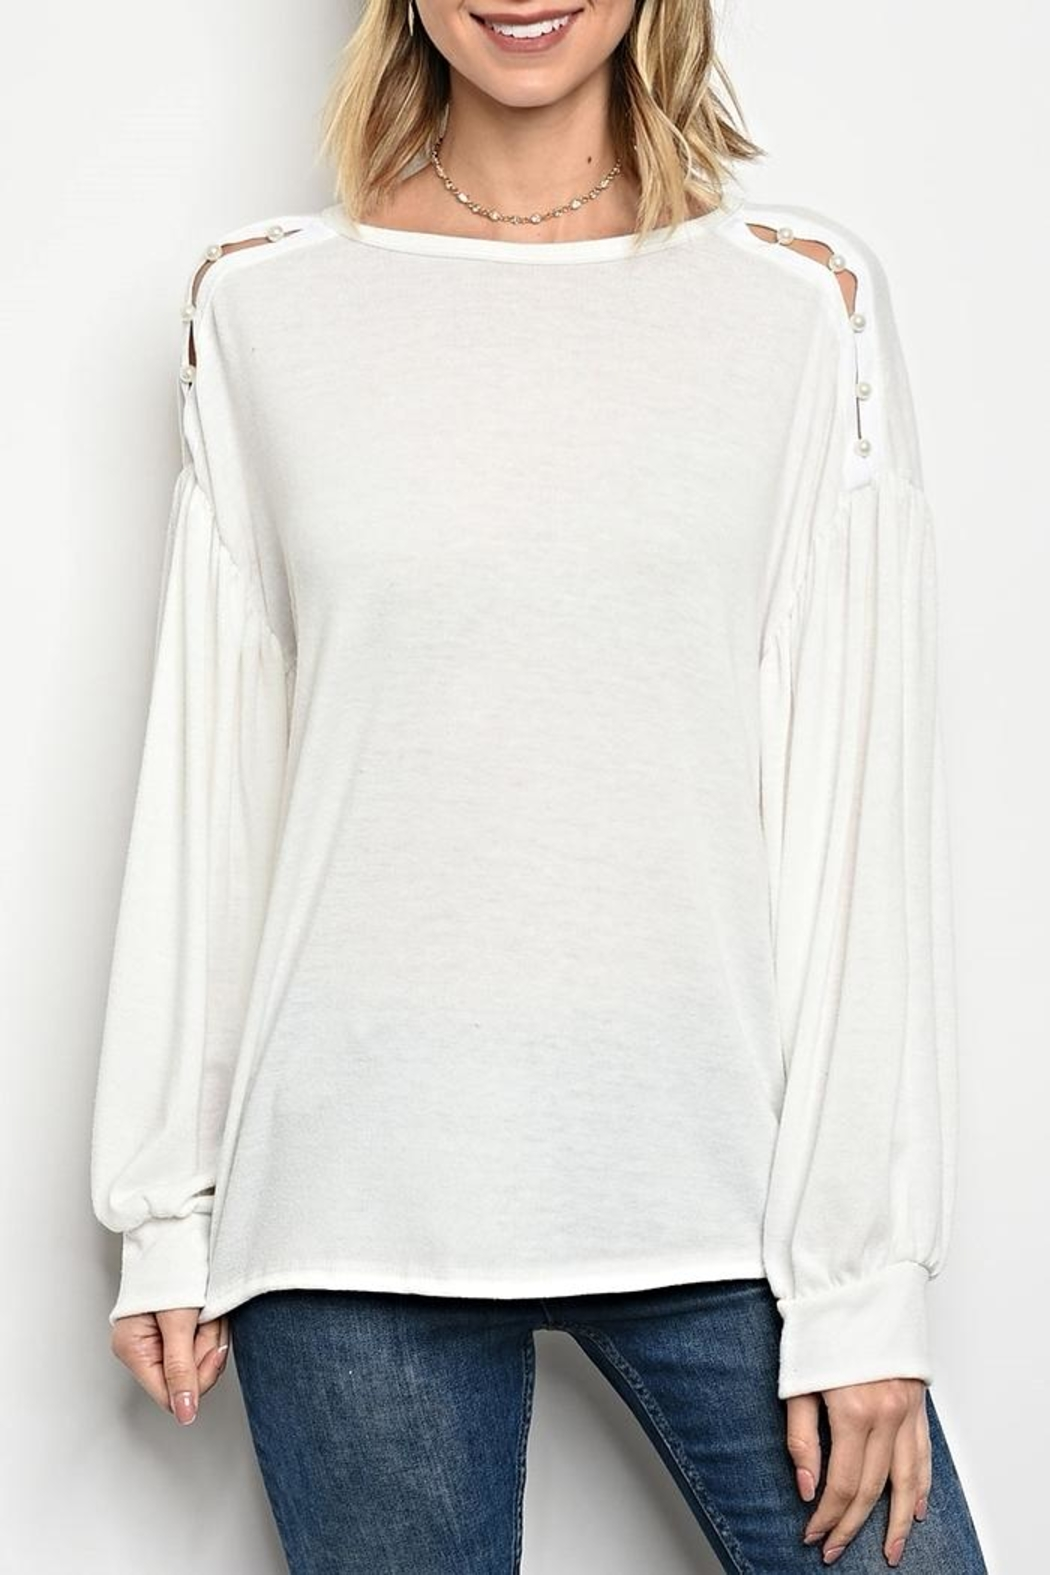 Sweet Claire White Button Sweater - Main Image